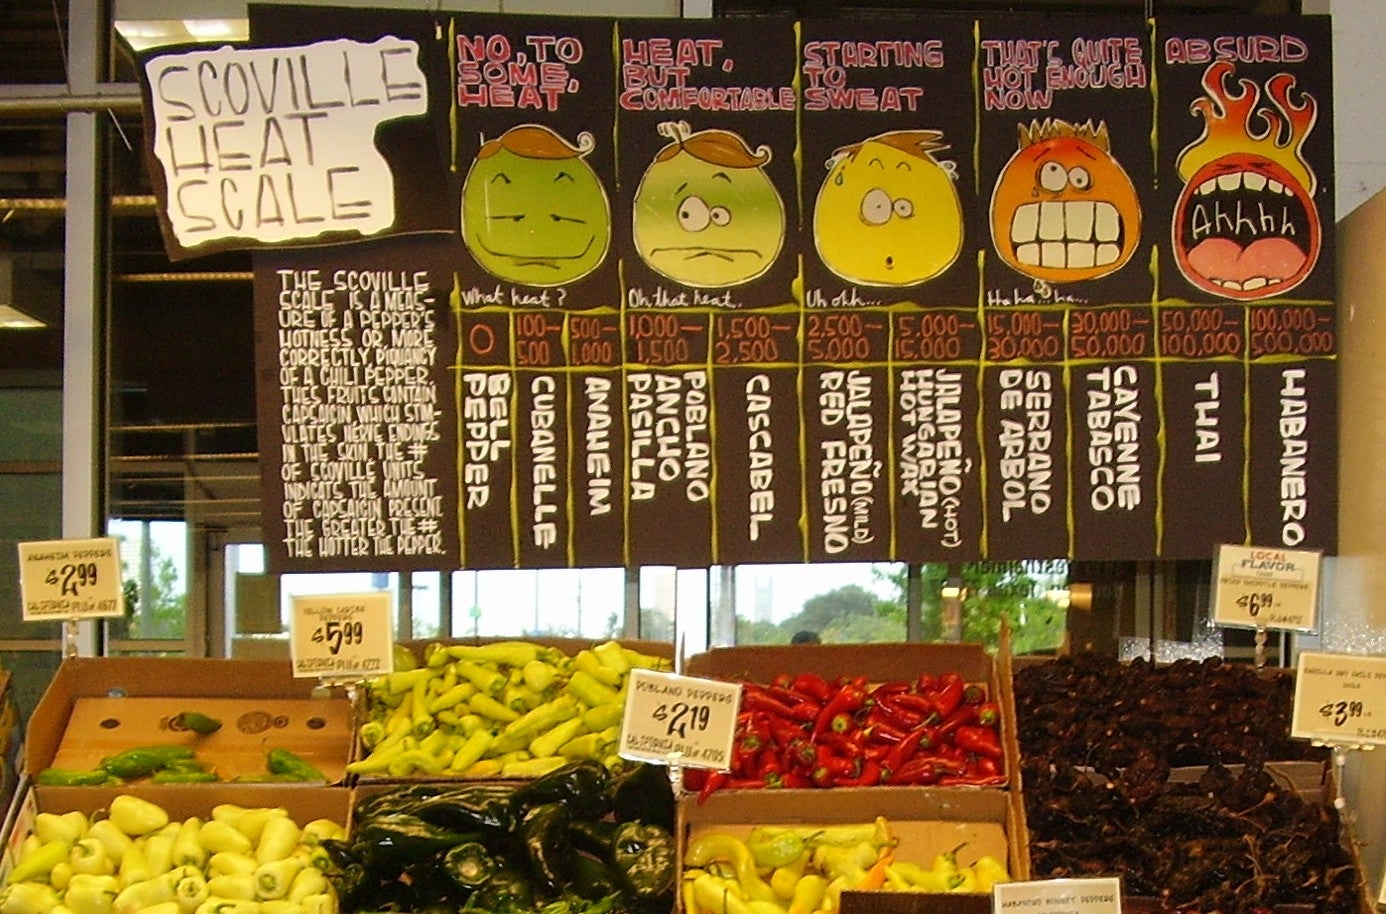 How Does The Scoville Scale Measure The Exact Hotness Of A Pepper?